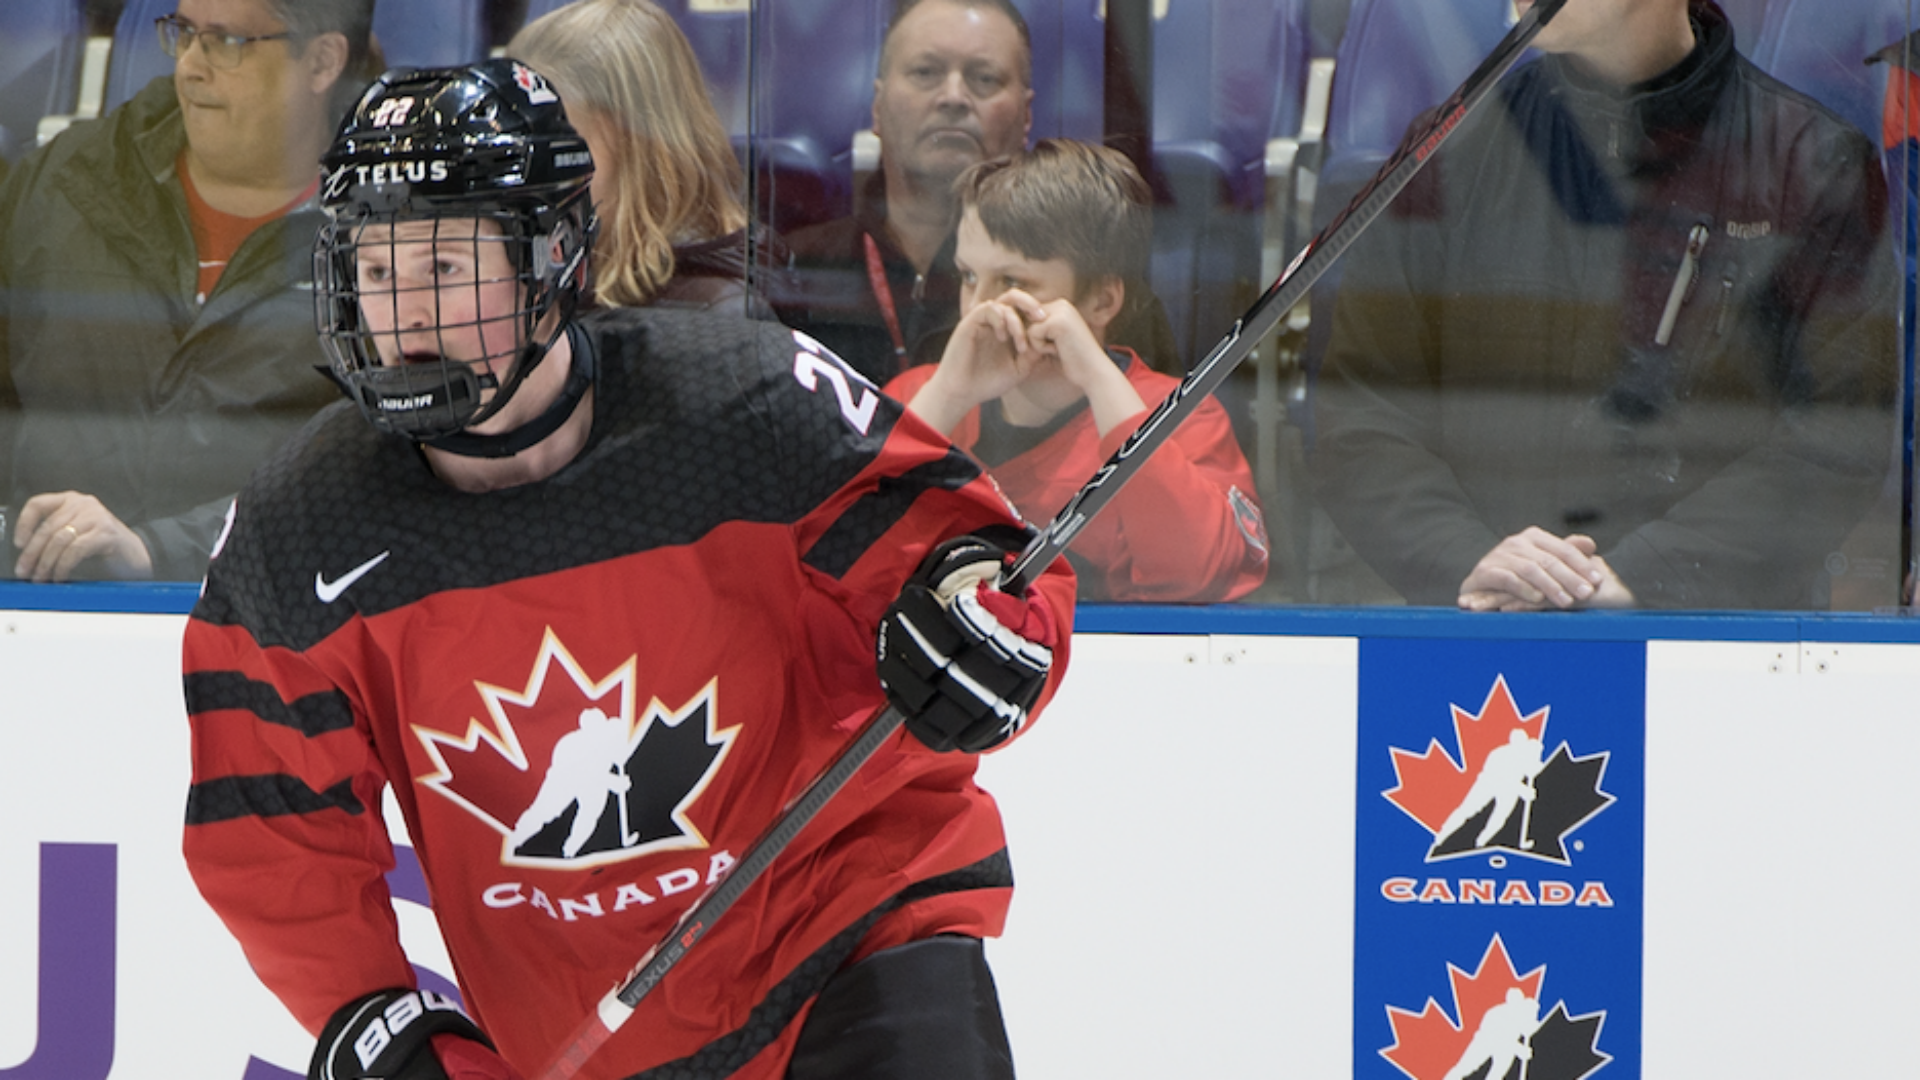 World Juniors 2020: Four storylines to watch in Canada-Russia gold medal game